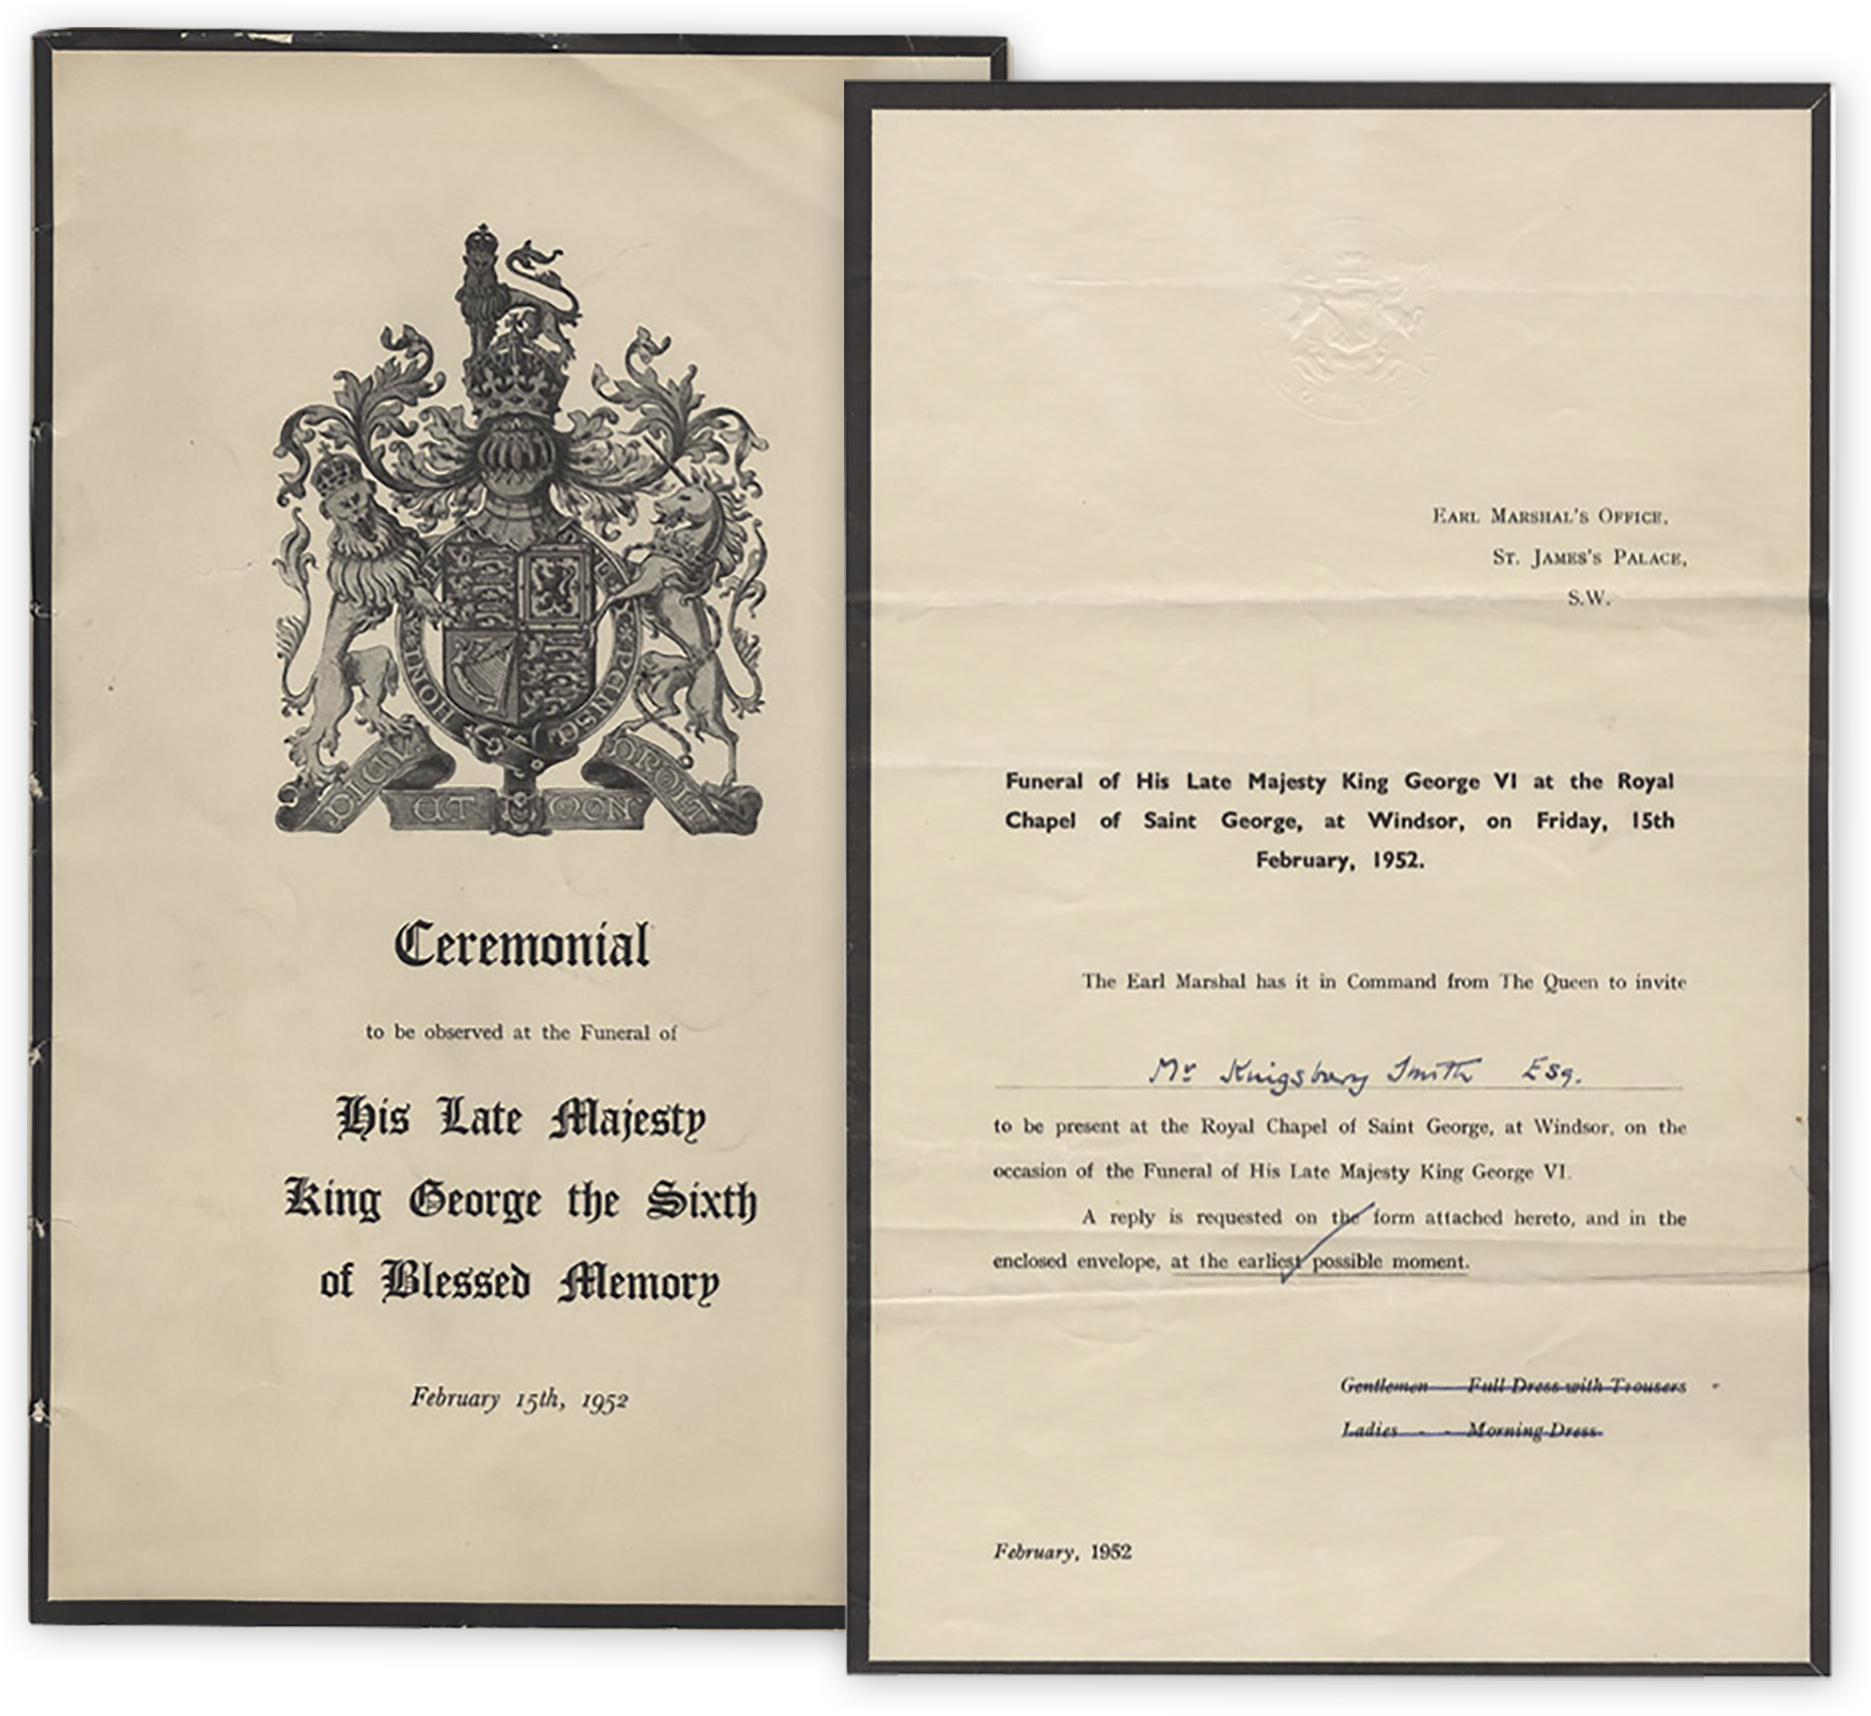 Lot Of Ceremonial Material From The Funeral Of King George VI In 1952     Includes ...  Invitation For Funeral